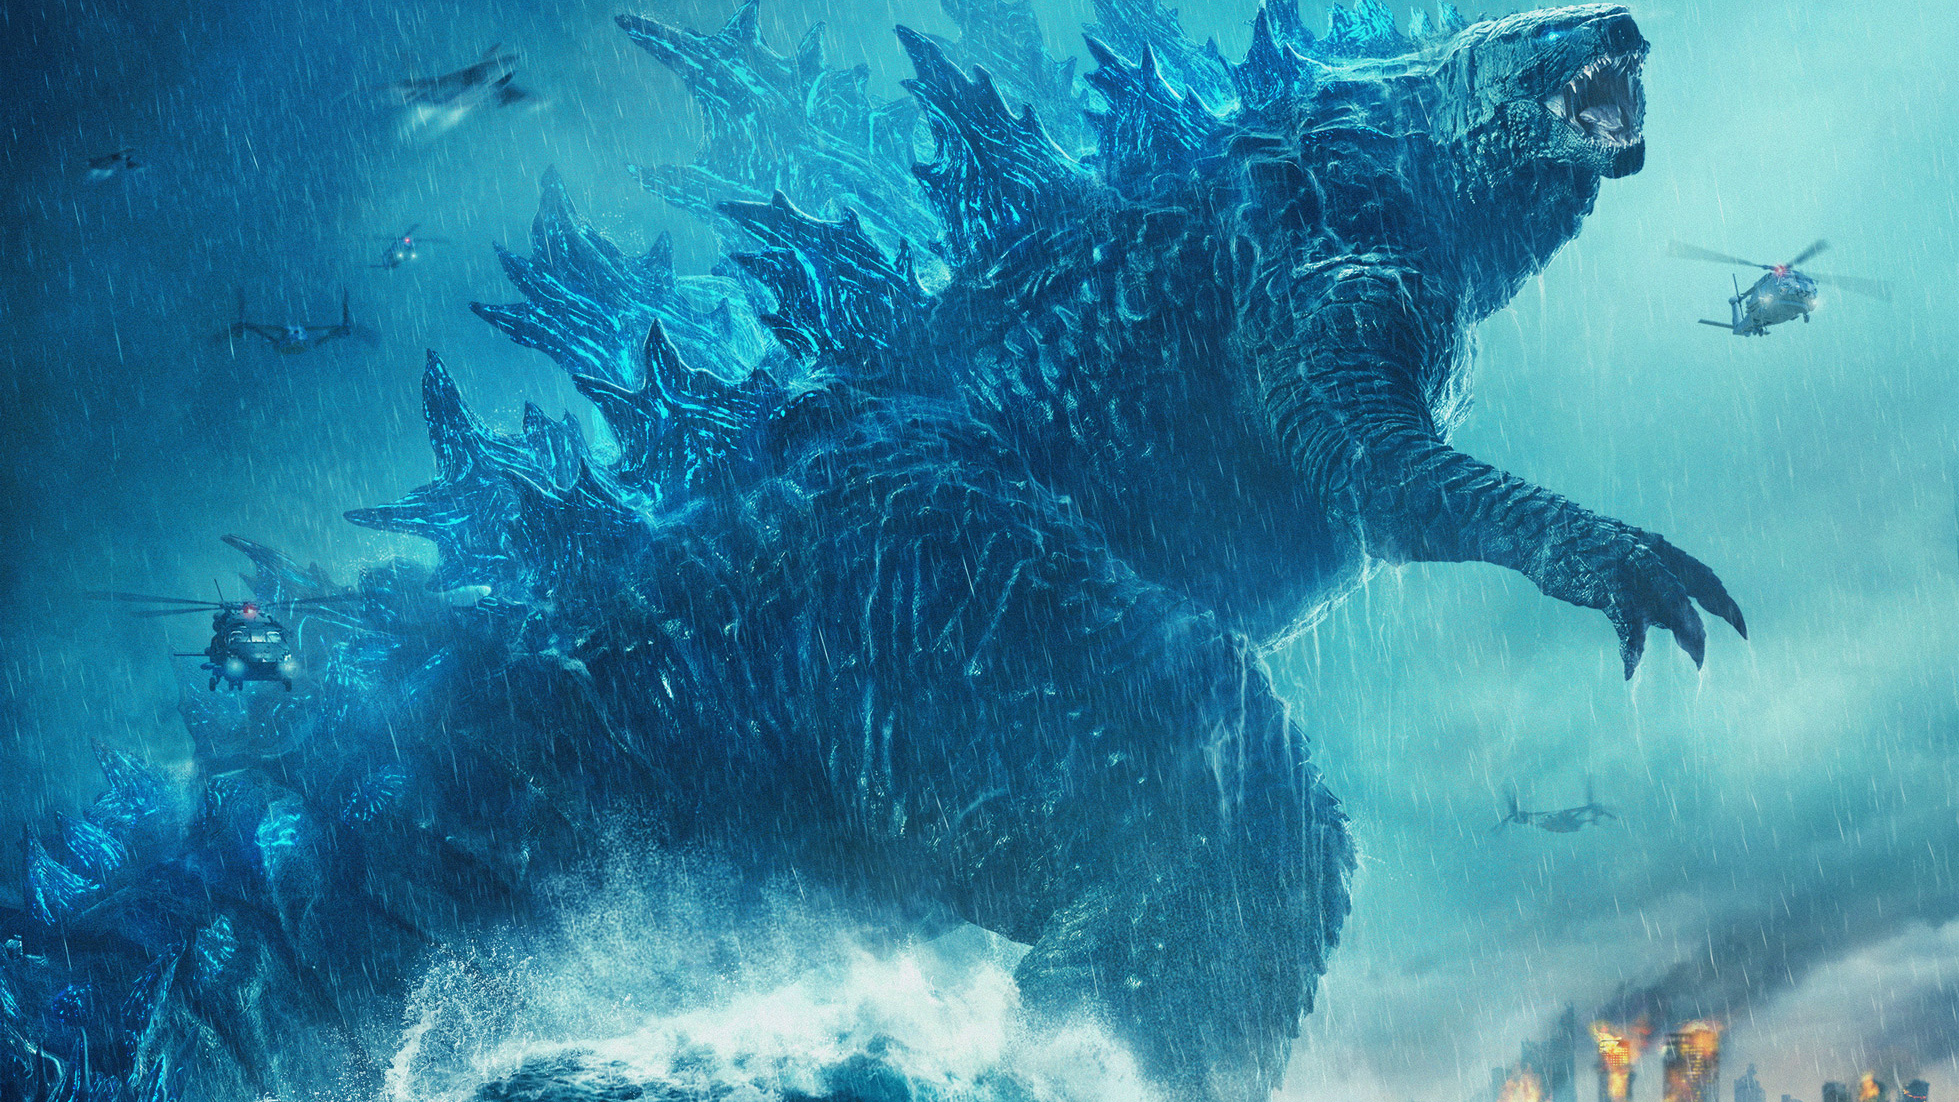 Godzilla King Of The Monsters 2019 Poster, HD Movies, 4k